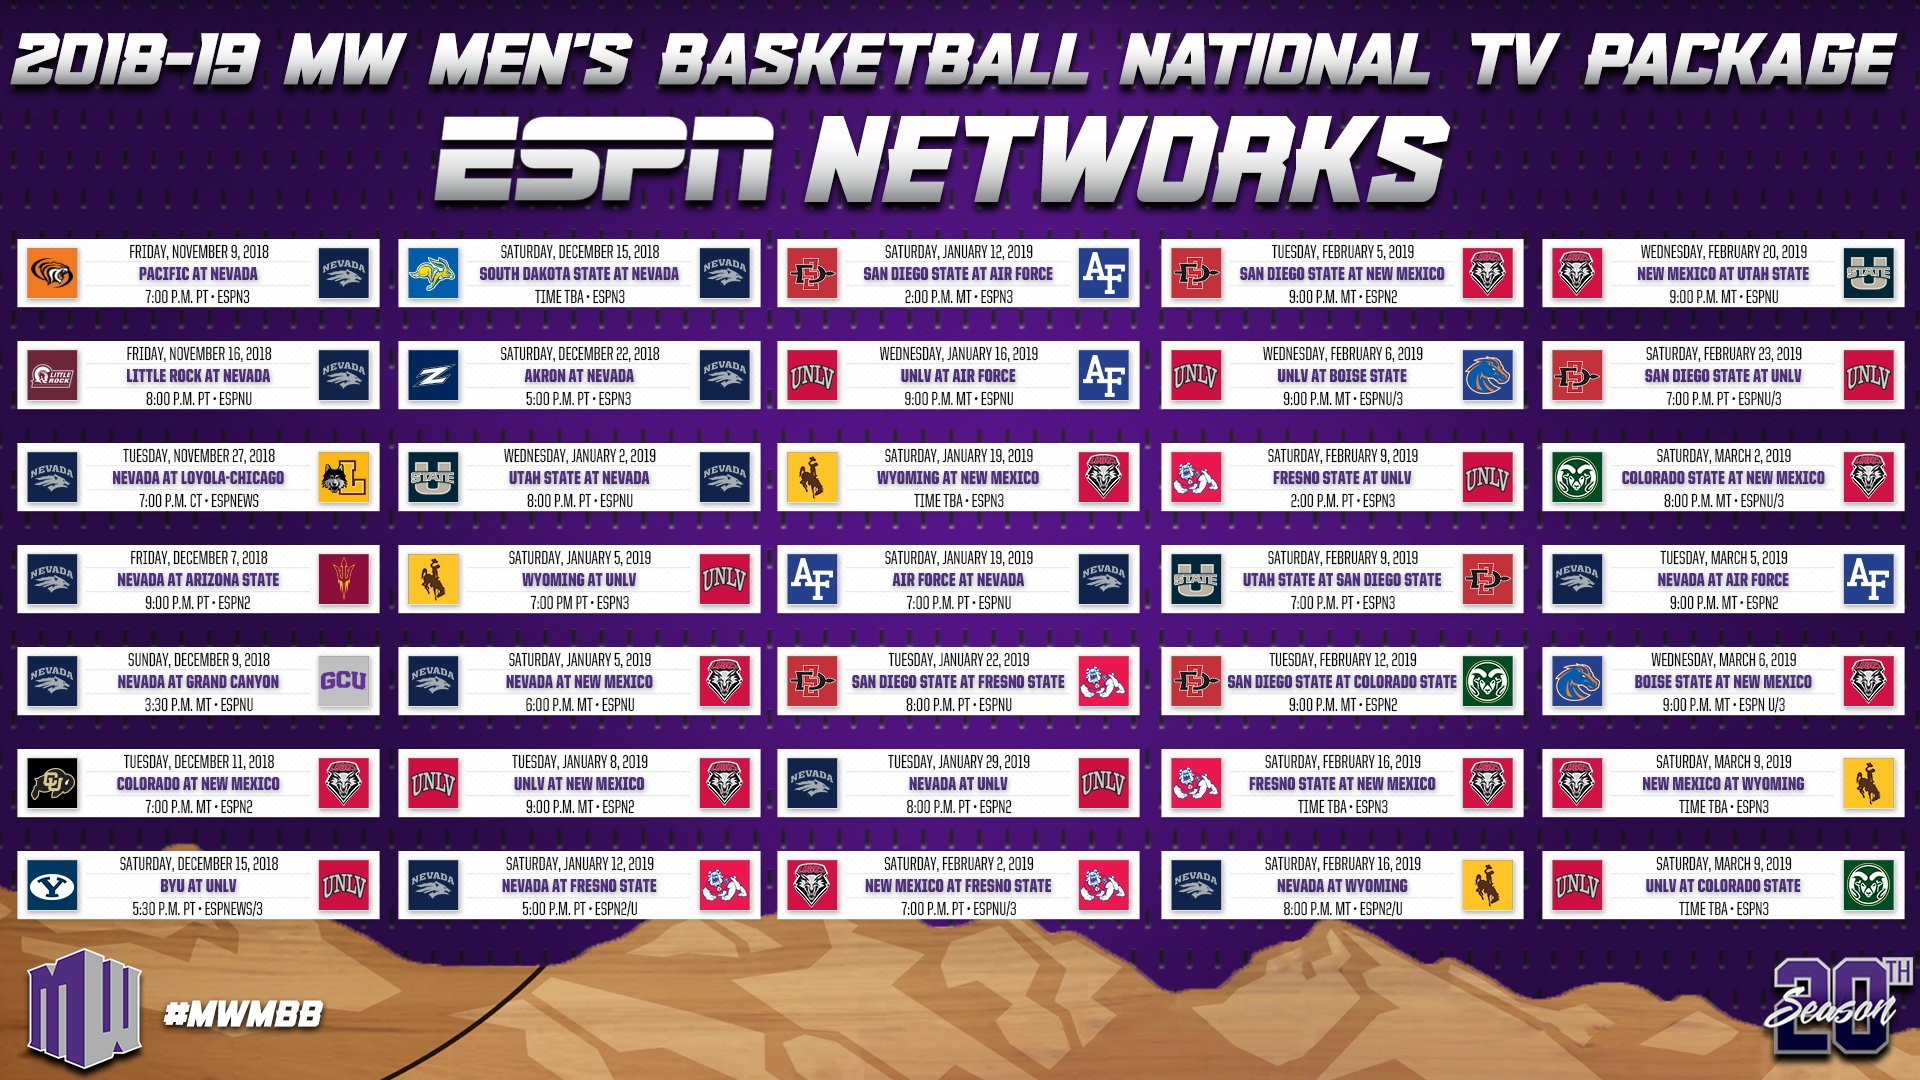 "Mountain West on Twitter ""We re ting close to some MW MBB action Check out the national TV broadcast schedules for the 2018 19 MWMBB 🏀 season"